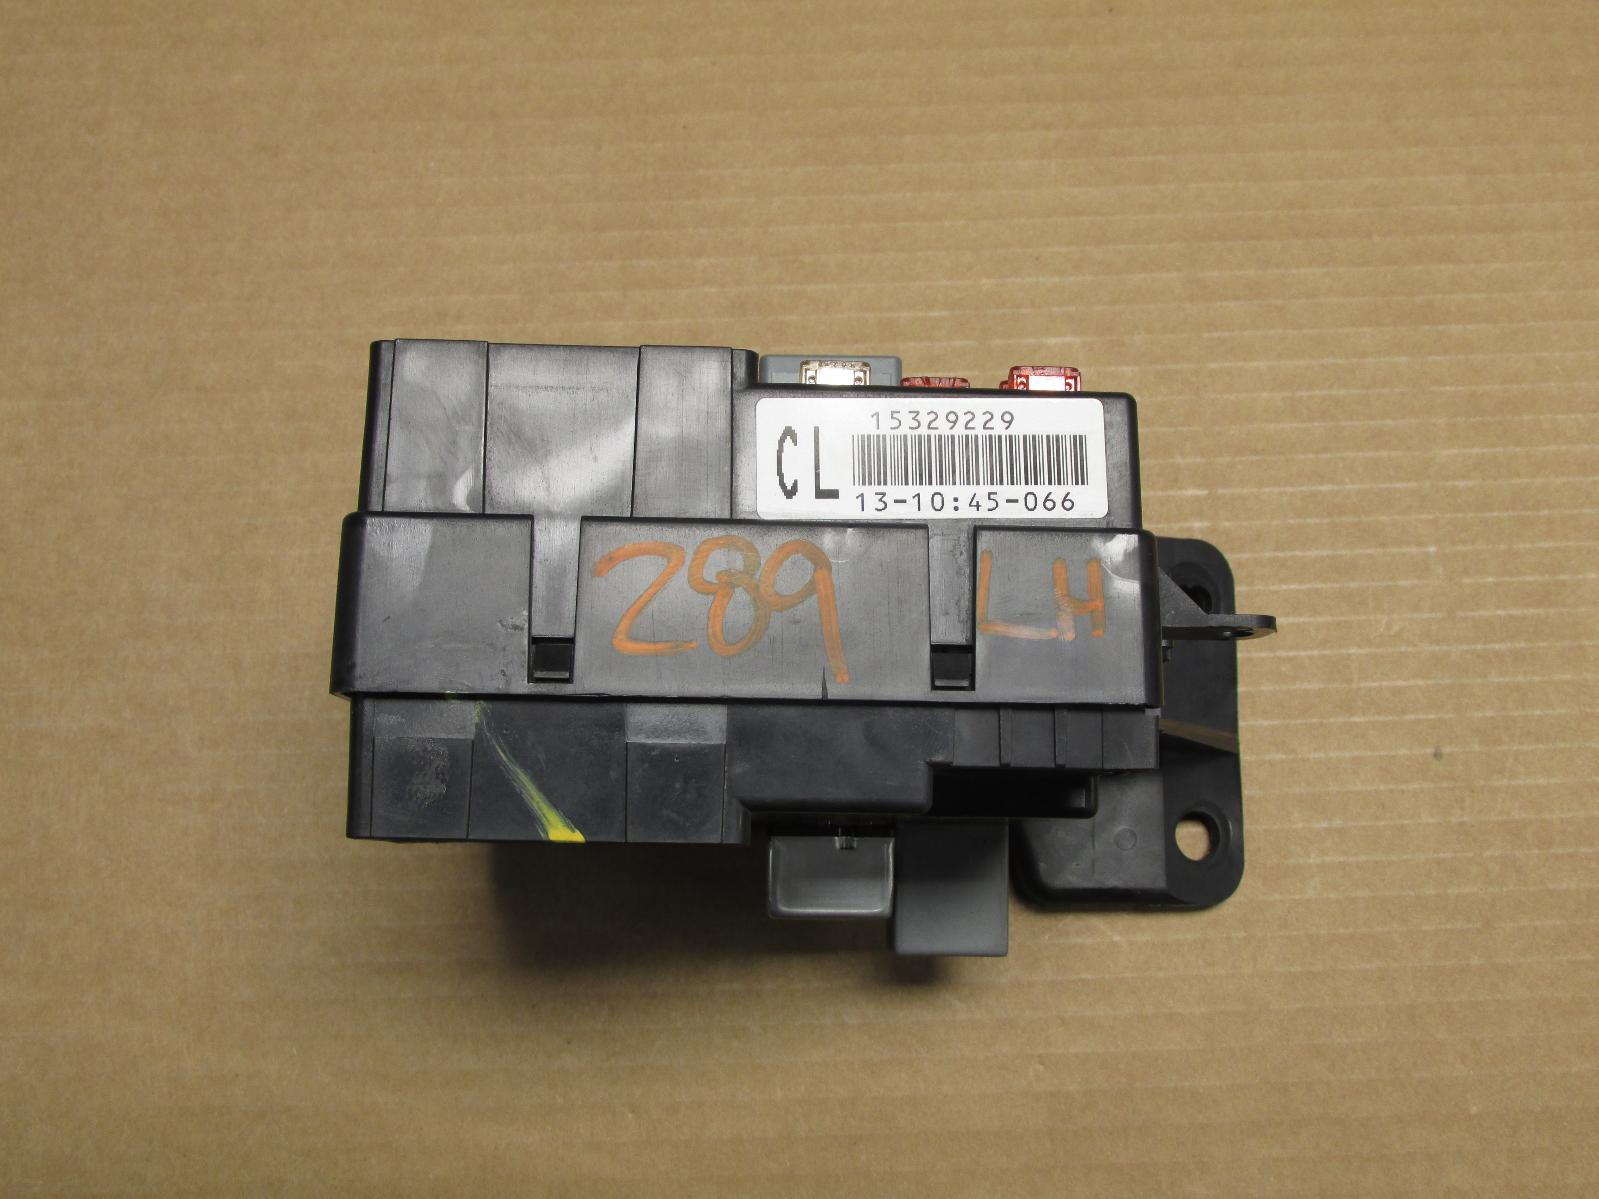 chevrolet impala fuse box on 2000 2001 2002 2003 2004 2005 chevy impala left side fuse ... 2011 chevrolet impala fuse box #3